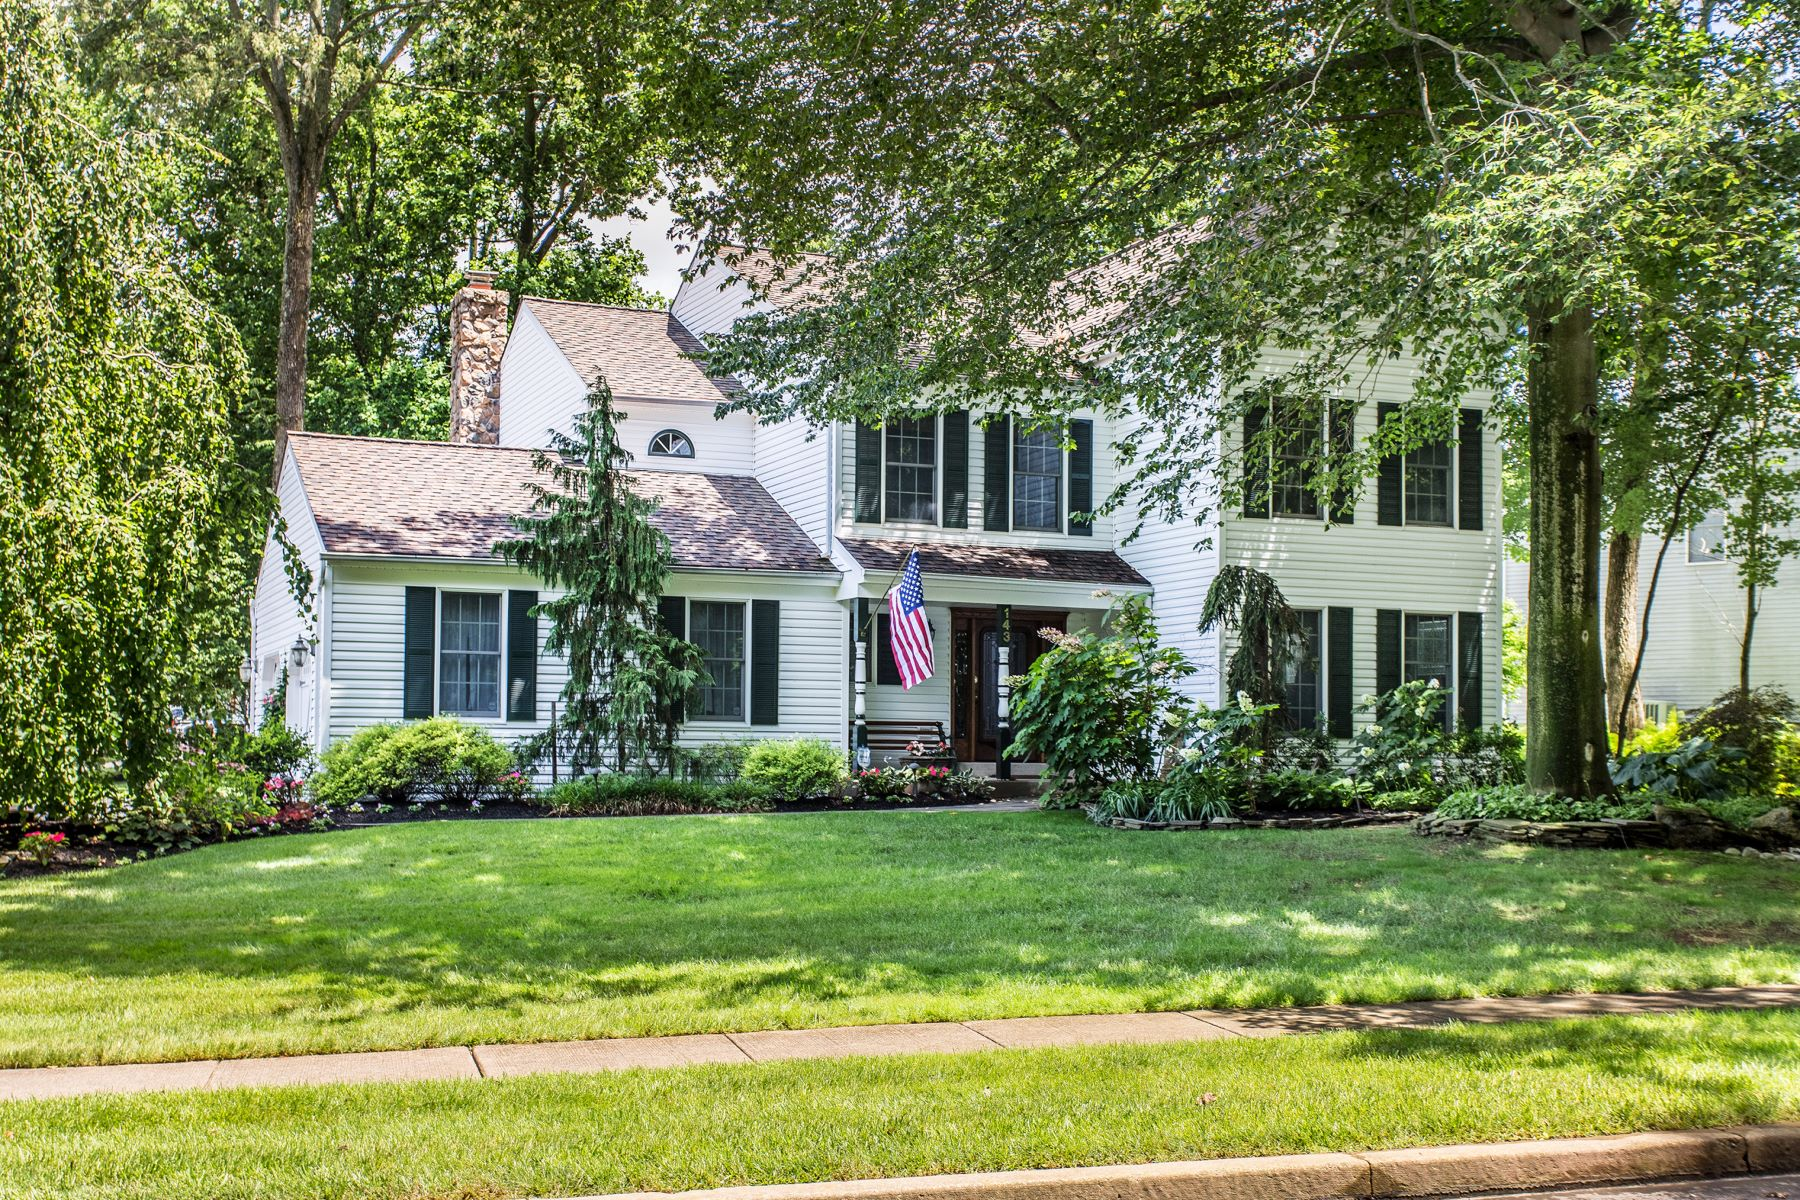 Single Family Home for Sale at 143 Claremont Dr Lansdale, Pennsylvania, 19446 United States